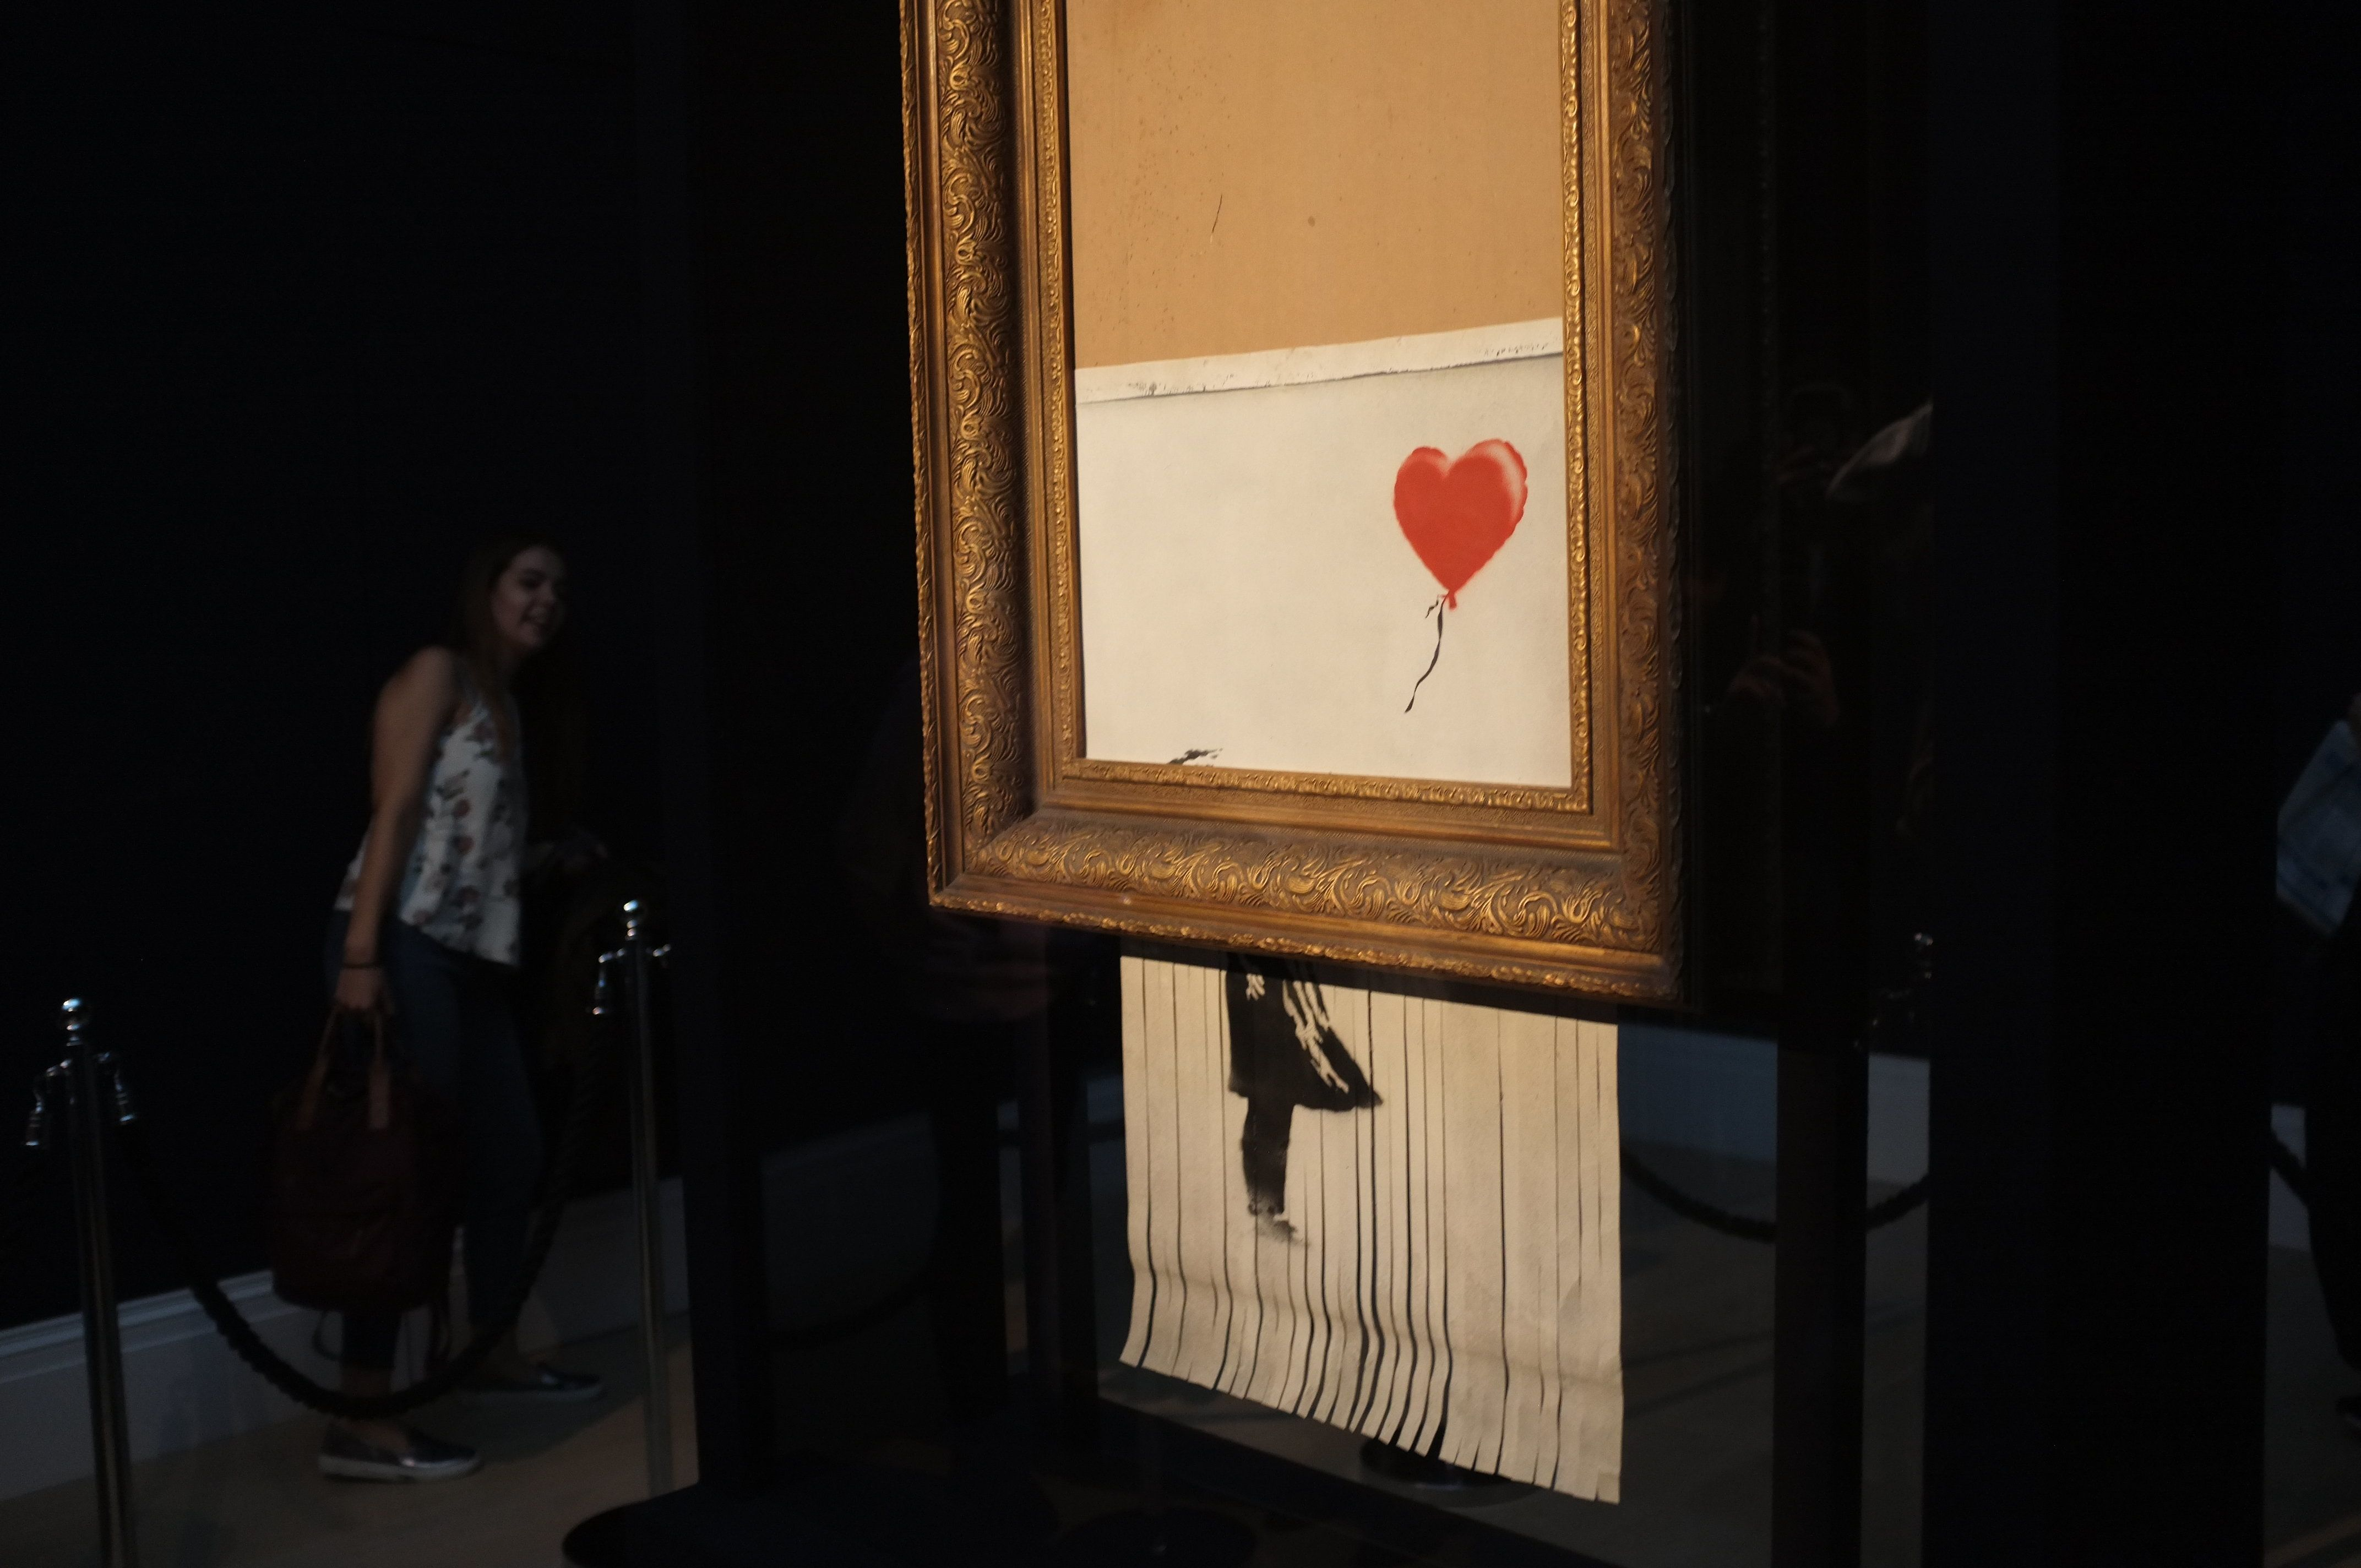 Visitors are pictured as they watch 'Love is in the Bin' by British artist Banksy at Sotheby's auction house, London on October 14, 2018. During Sotheby's Contemporary Art Sale on 5th October the Banksy artwork 'Girl with Balloon' shredded through the bottom of the frame as it was sold. With Banksy being responsible for the shredding, the buyer has agreed to proceed with the sale and it is now titled 'Love is in the Bin' and said to be worth more than the £1.04million paid. (Photo by Alberto Pezzali/NurPhoto via Getty Images)